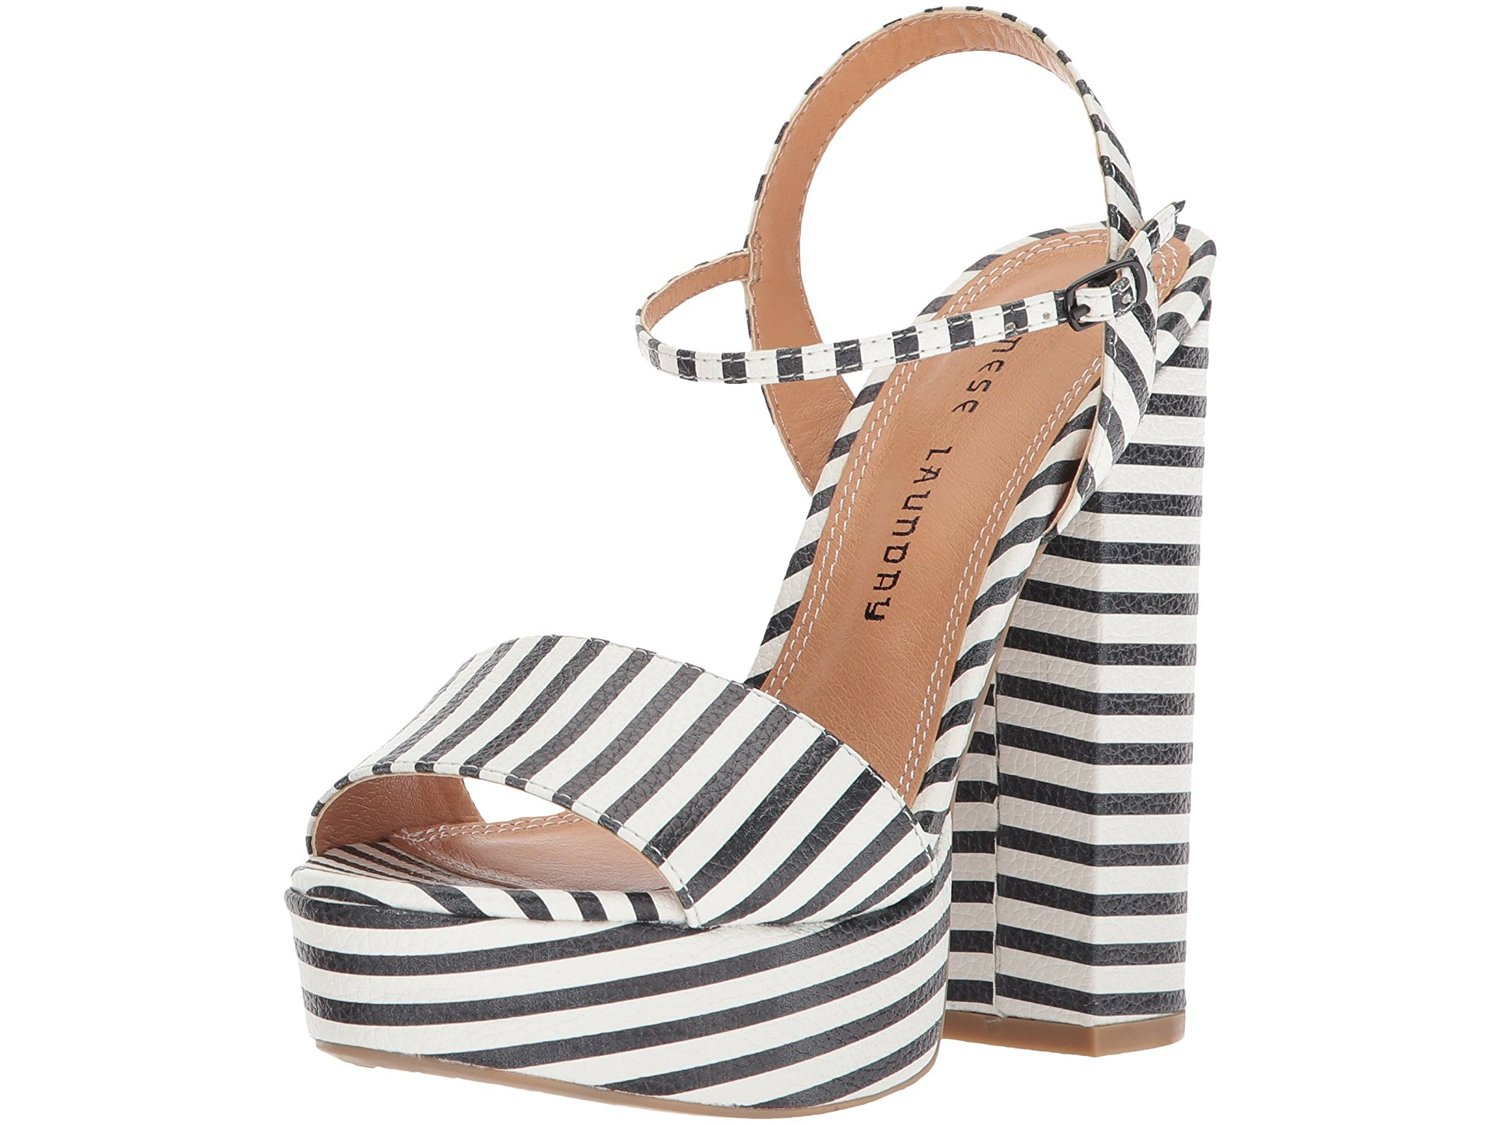 f3d10d7ee2f62 Chinese Laundry Women s Aries Stripe Platform Sandal